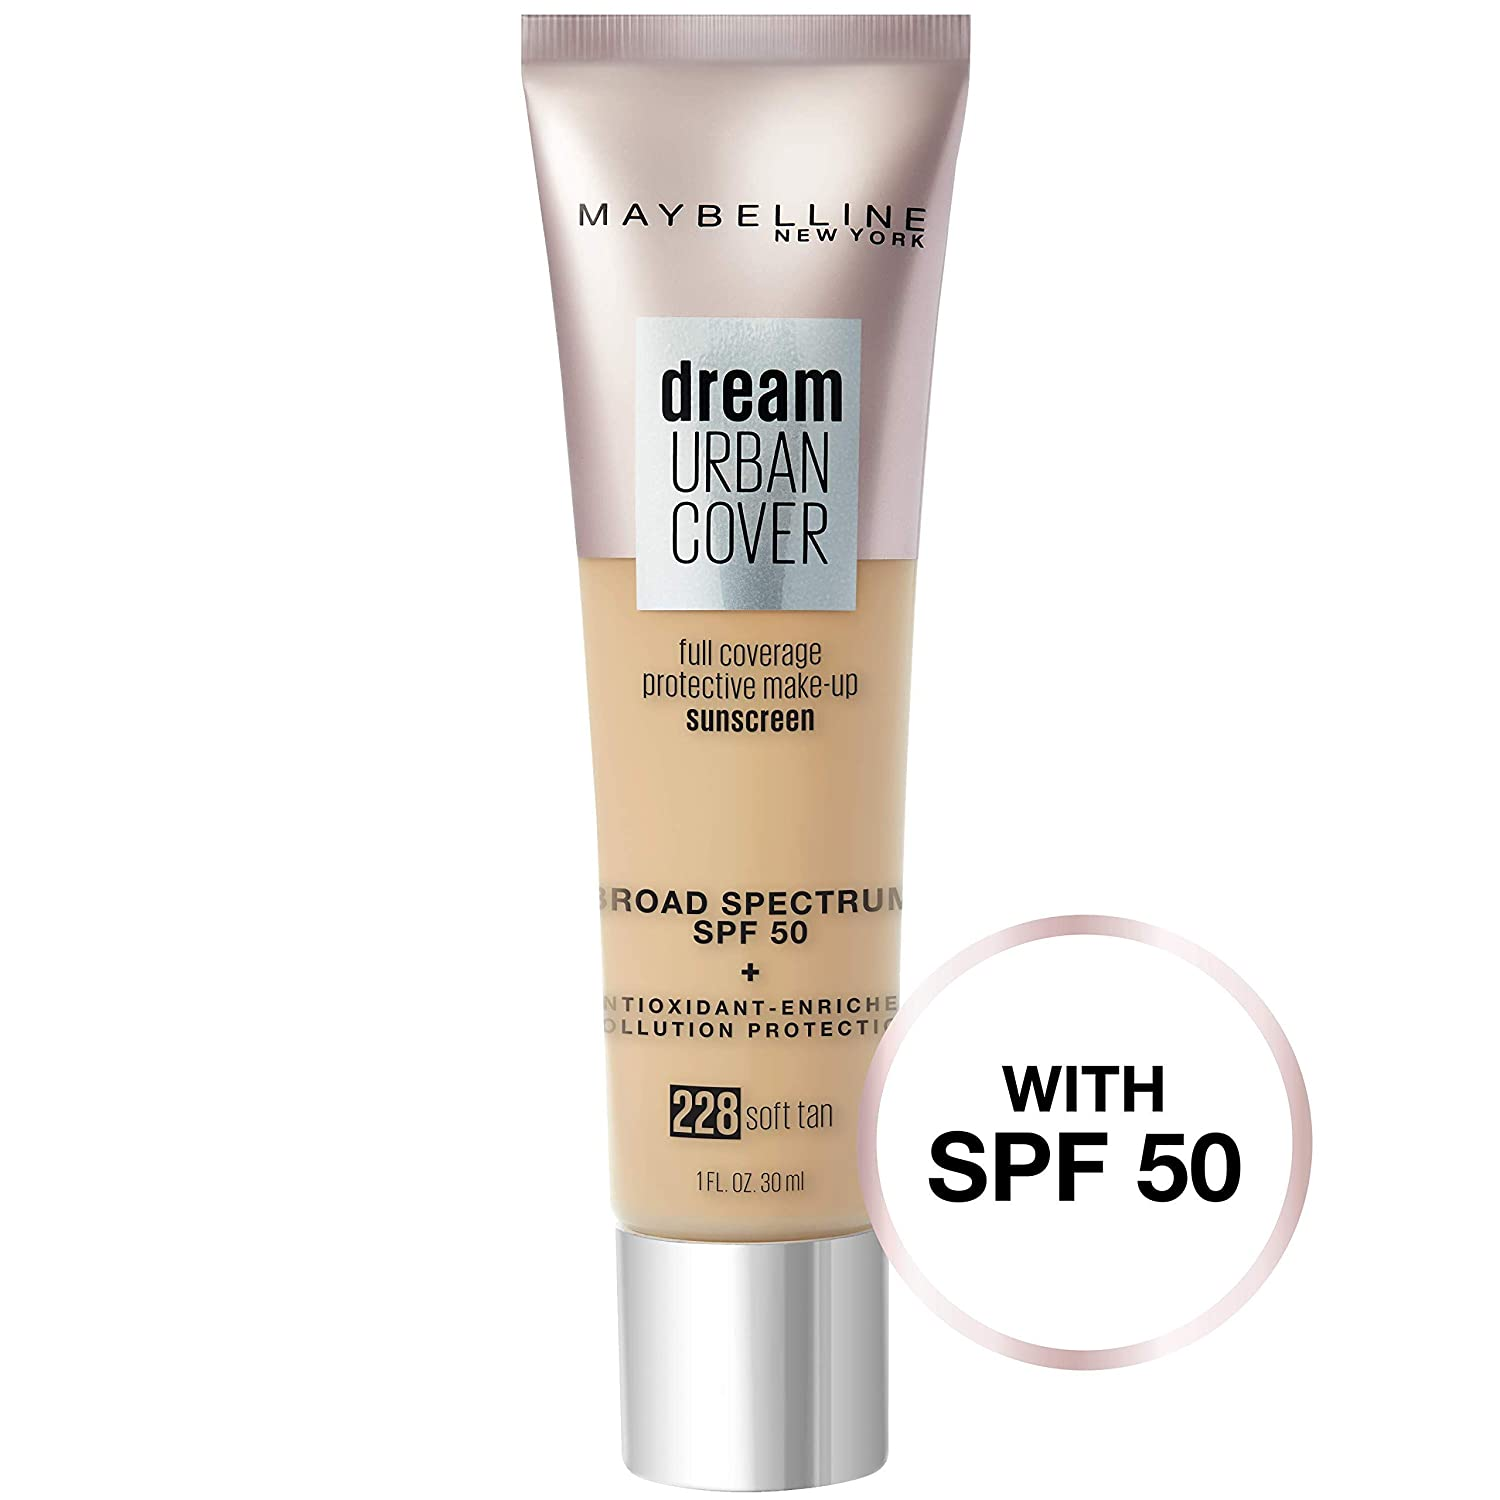 Maybelline Dream Urban Cover Flawless Coverage Foundation Makeup, SPF 50, Soft Tan